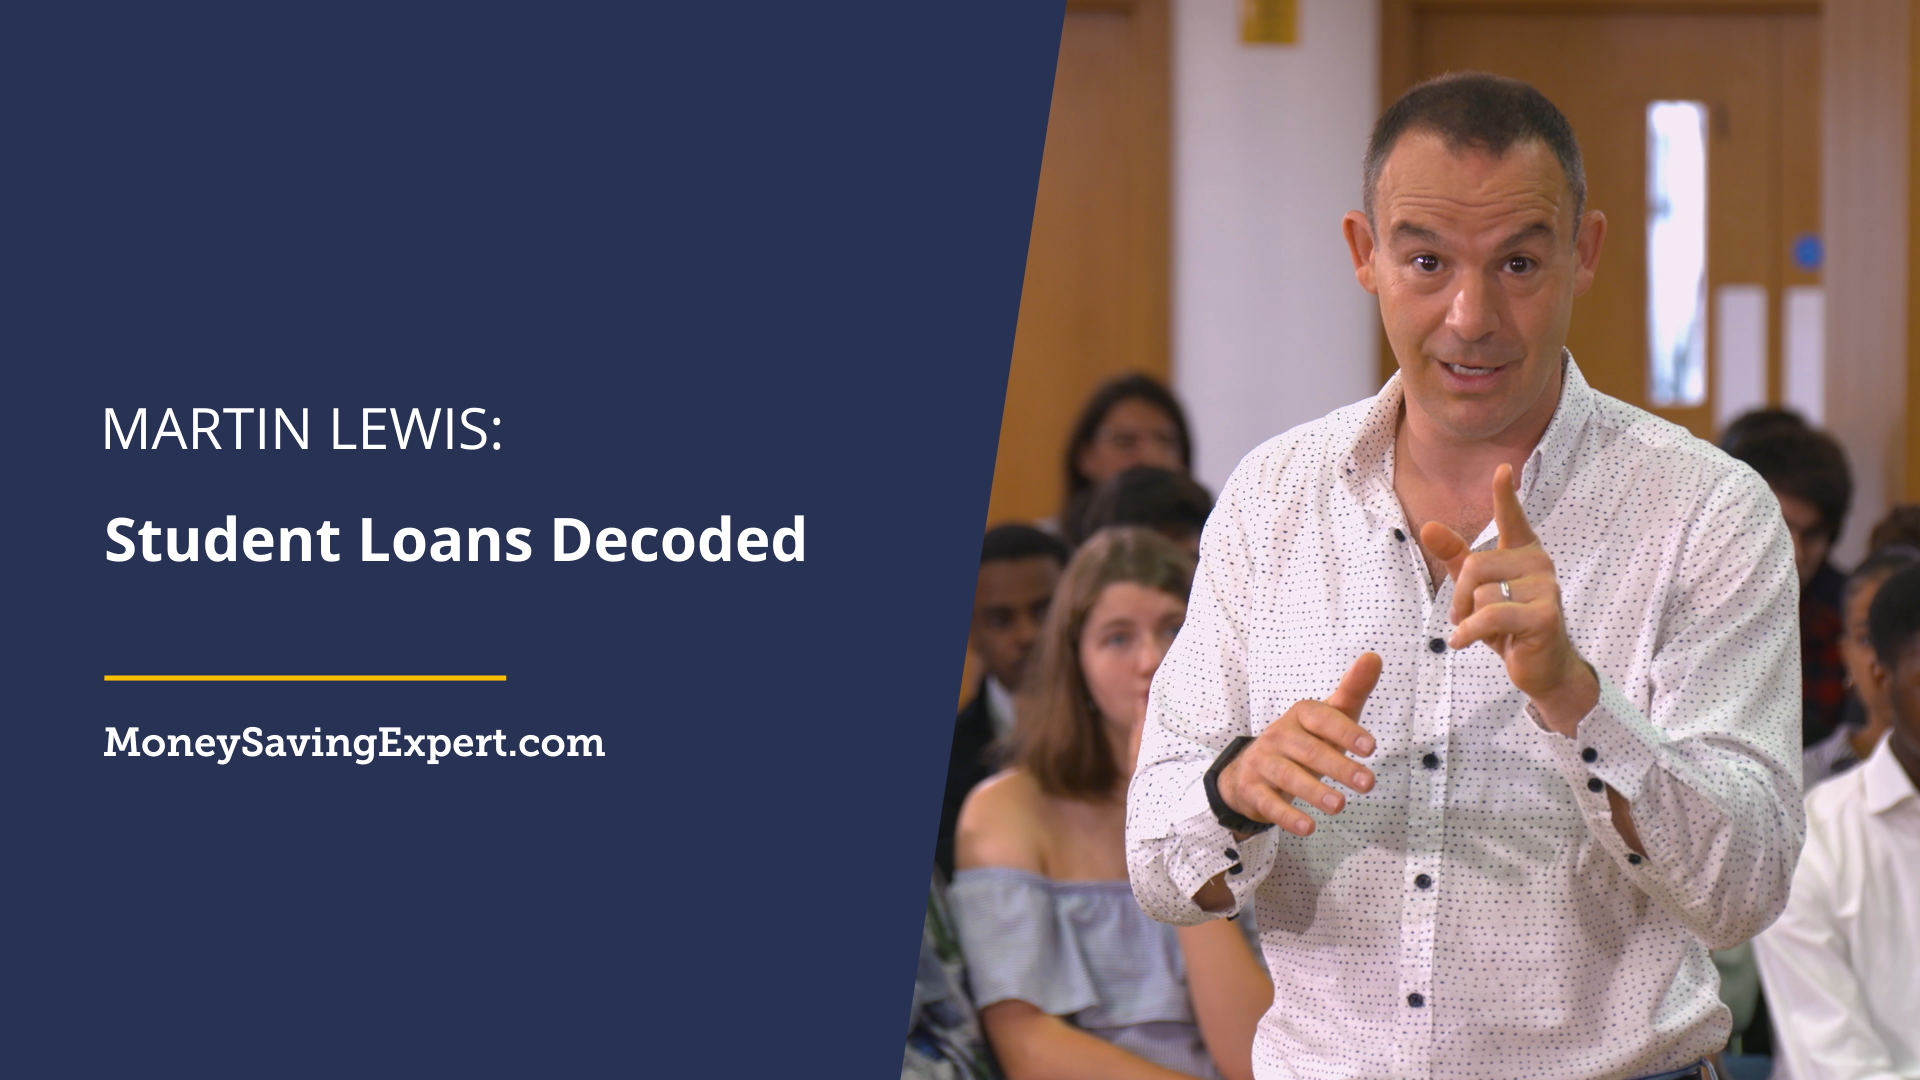 Martin Lewis: Student Loans Decoded